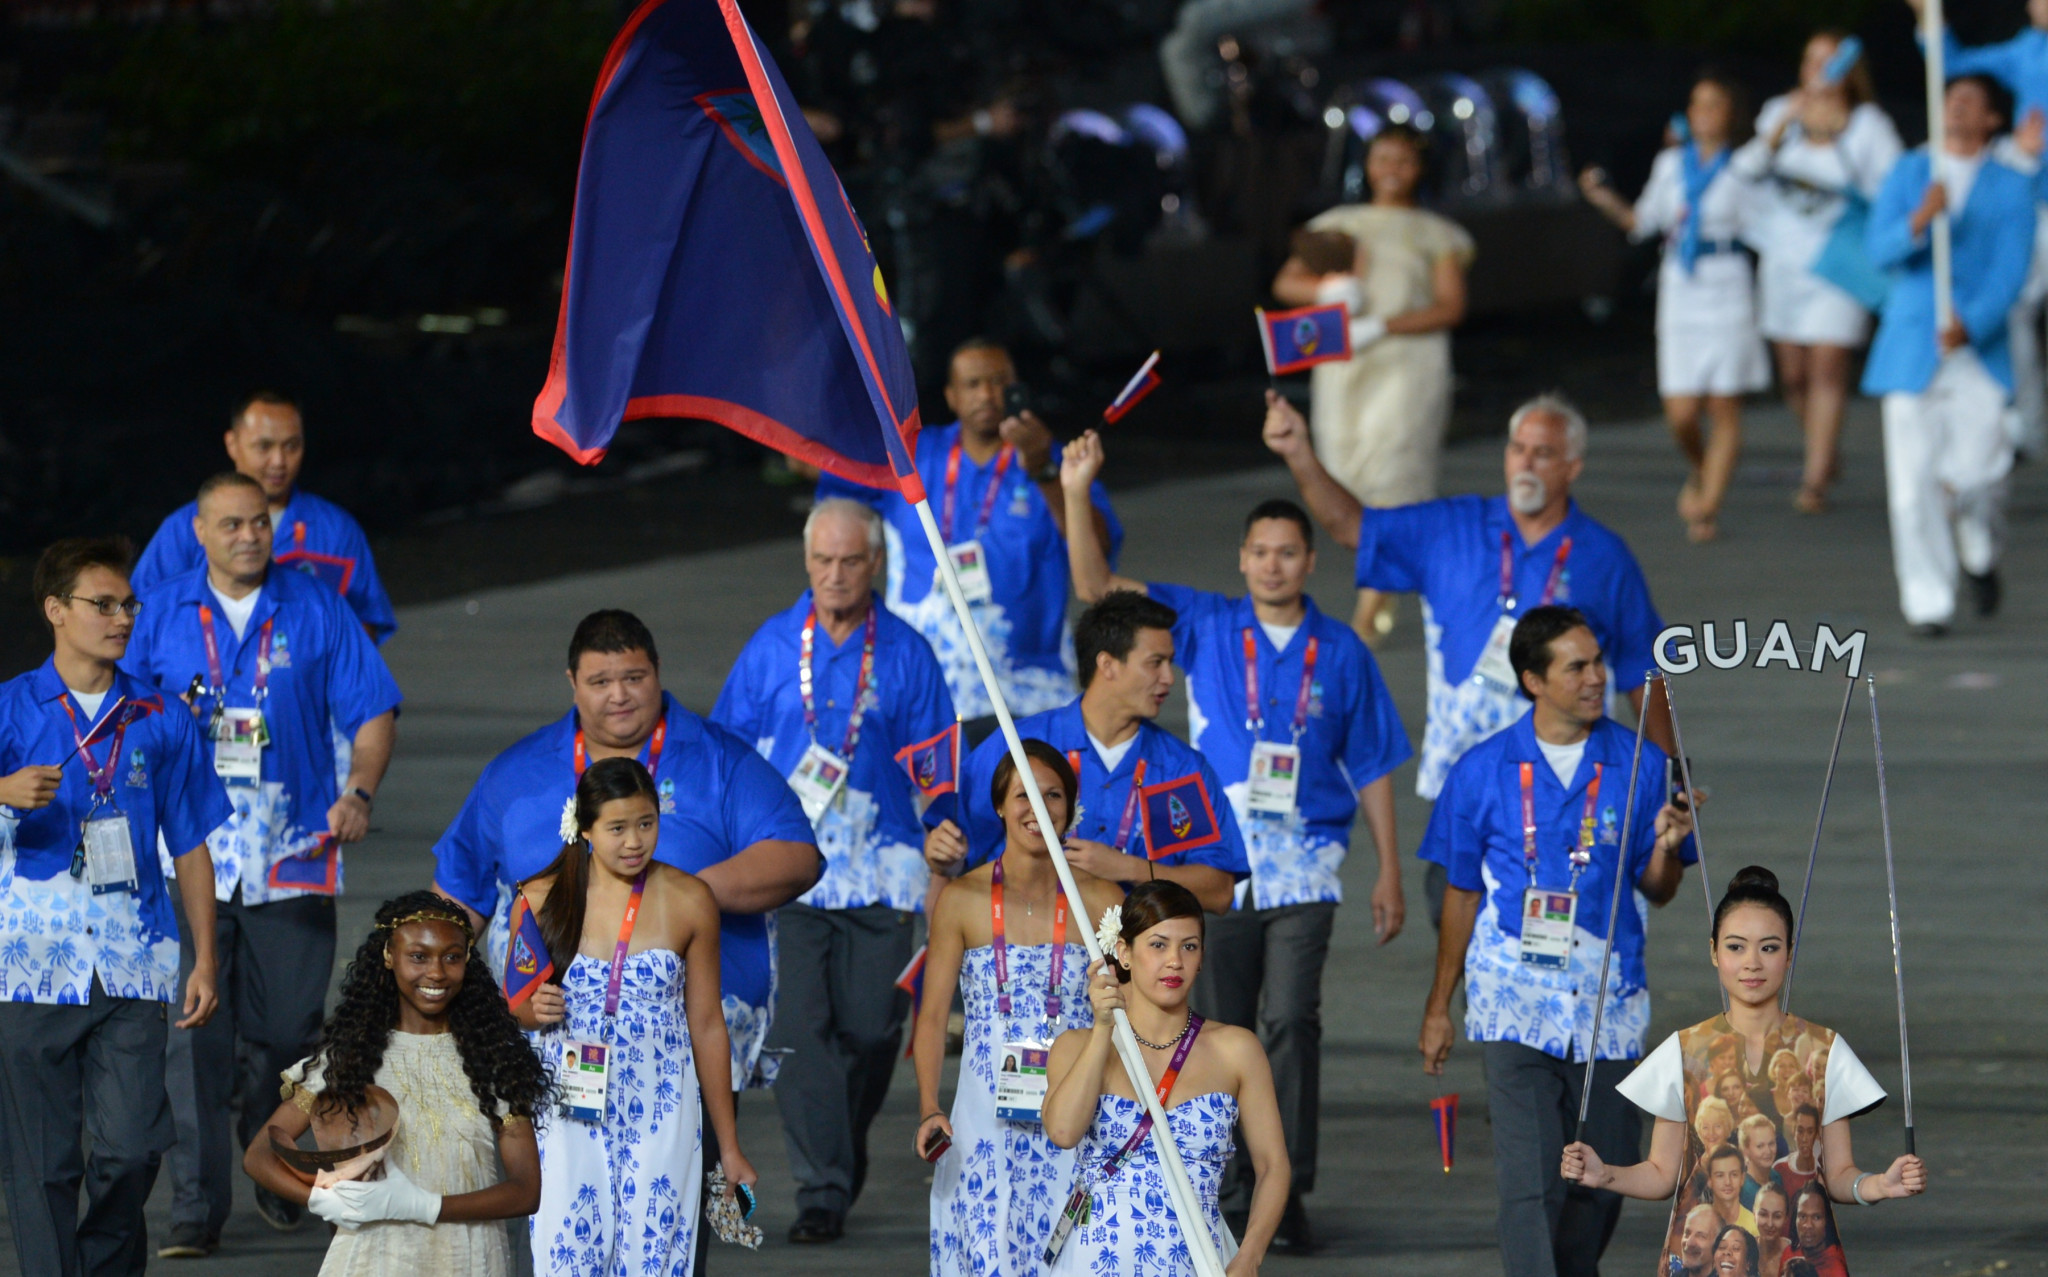 Guam are set to compete at Tokyo 2020, according to GNOC President Ricardo Blas ©Getty Images